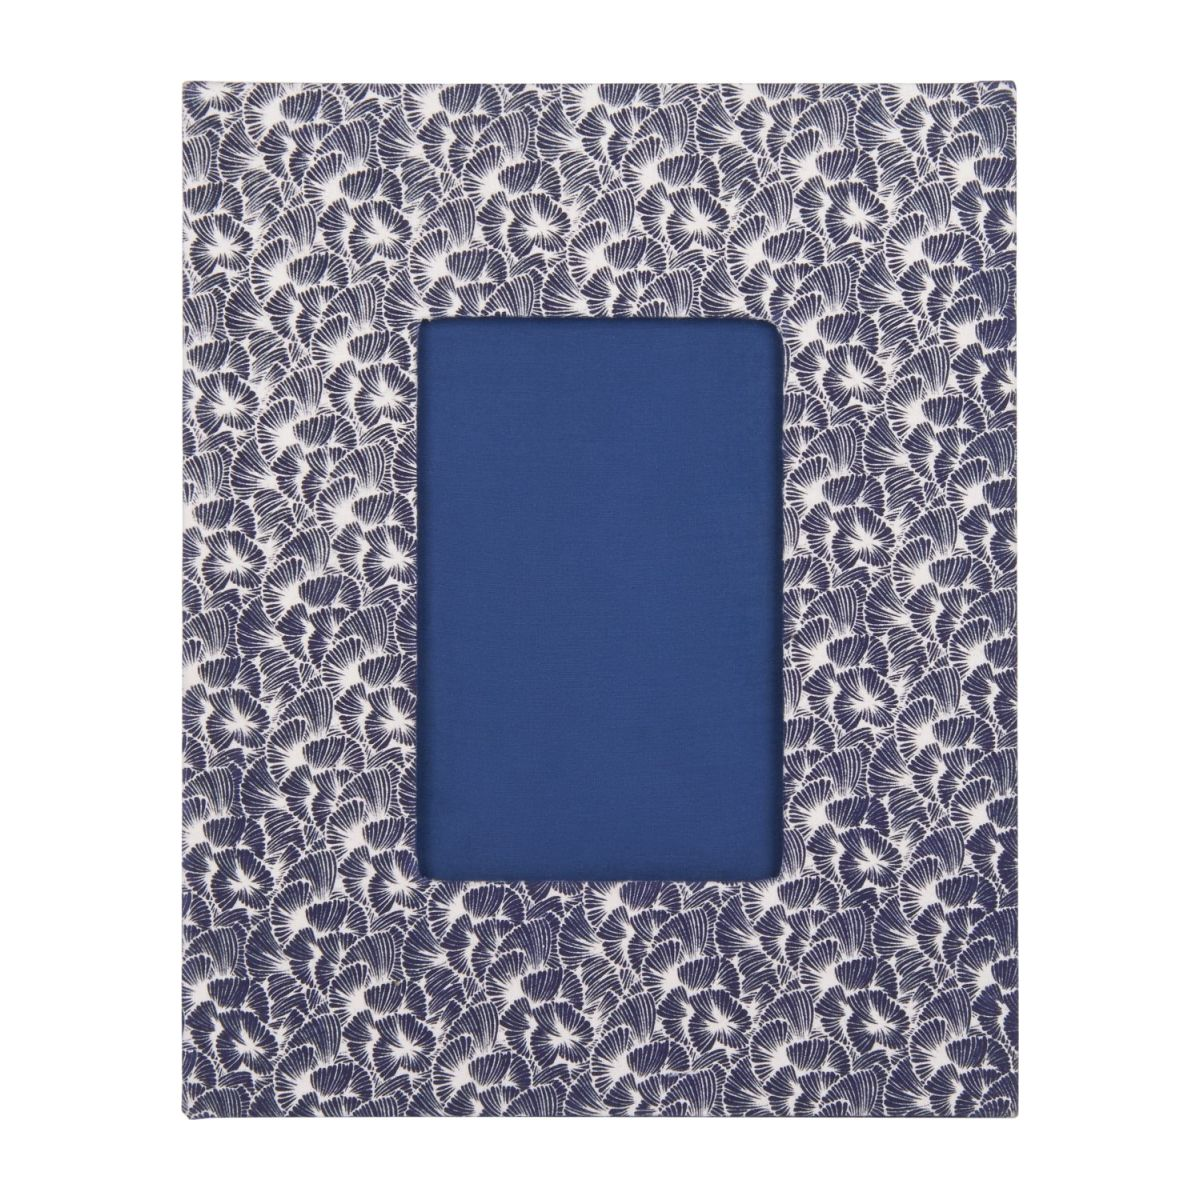 Photo frame 15x10cm, with patterns n°2